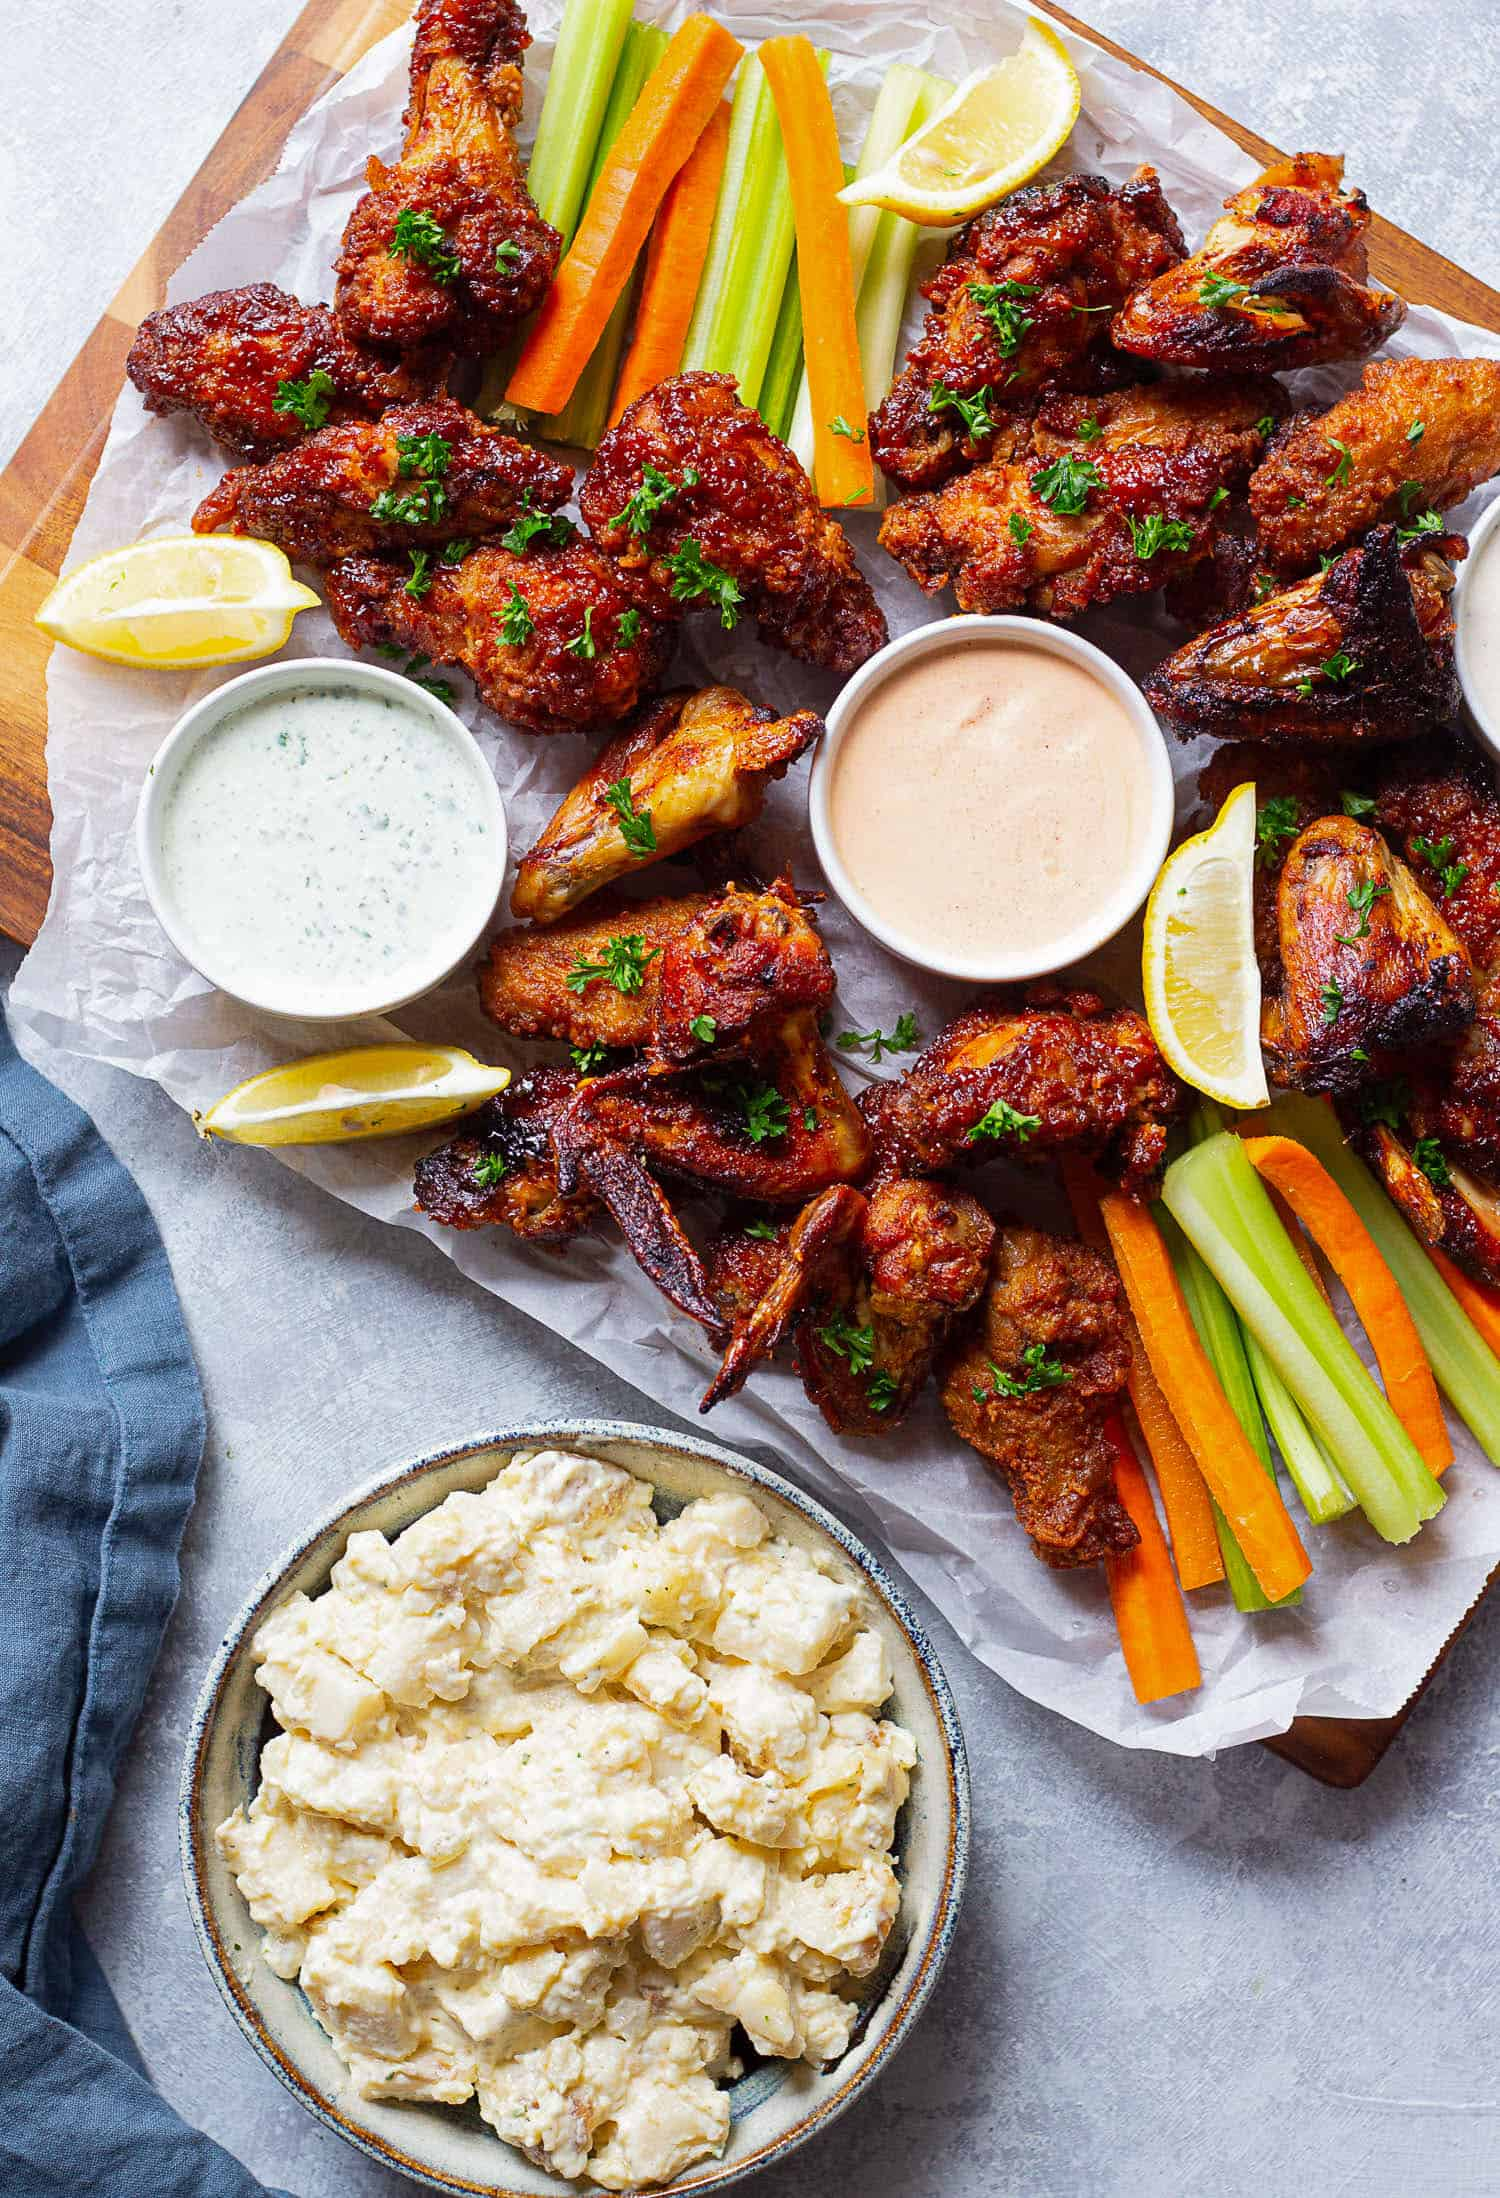 Serve wings with sauces and a side of potato salad.